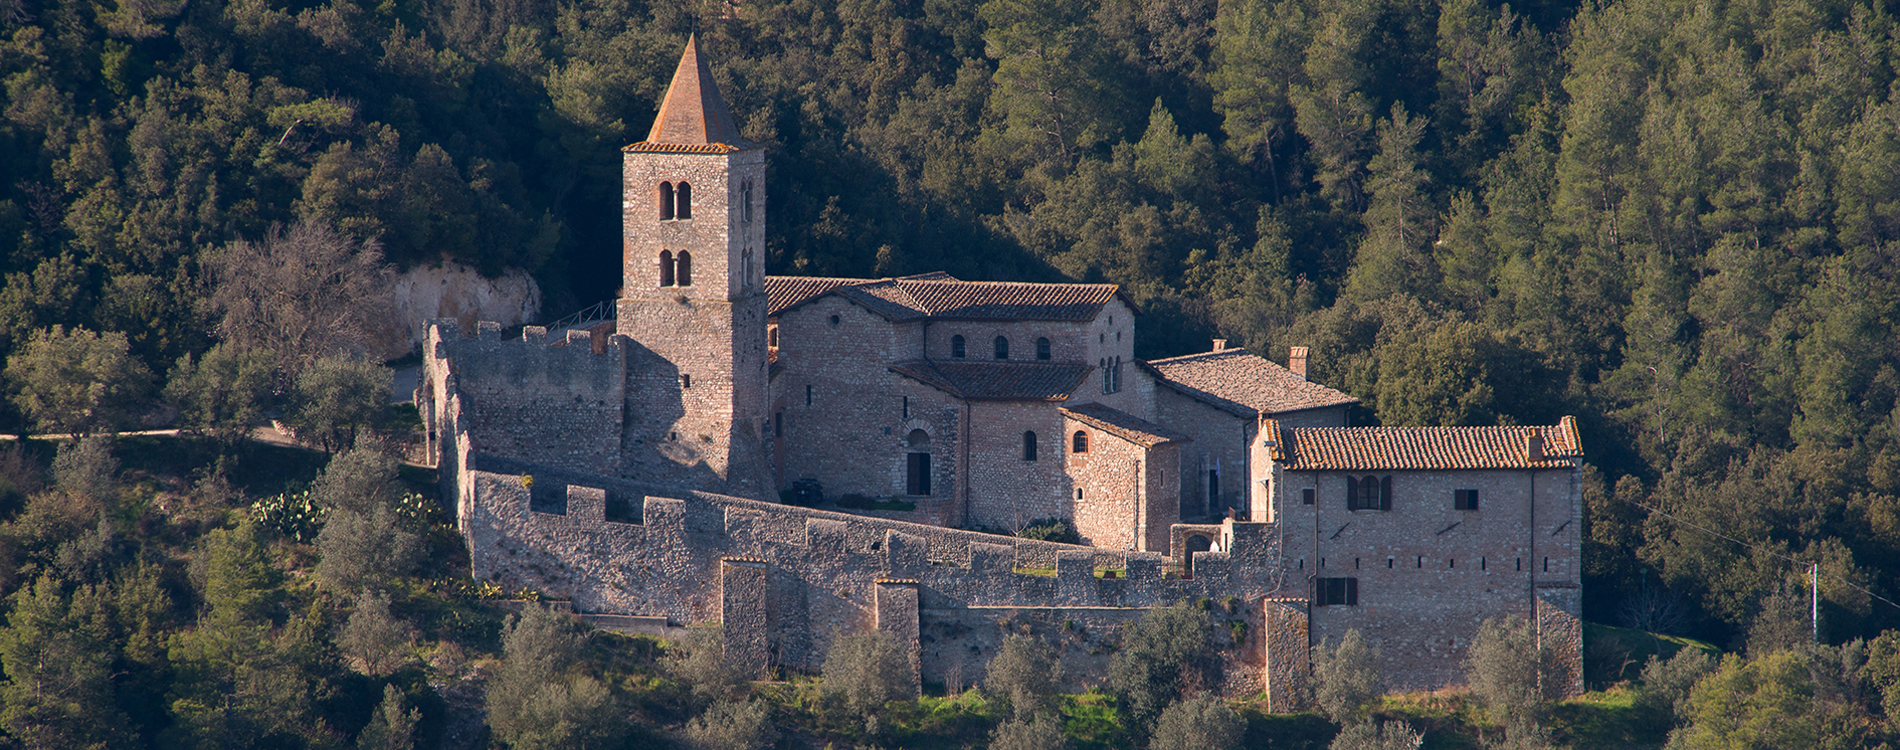 t4 the path of the franciscan proto martyrs terni umbria abbazia di san cassiano